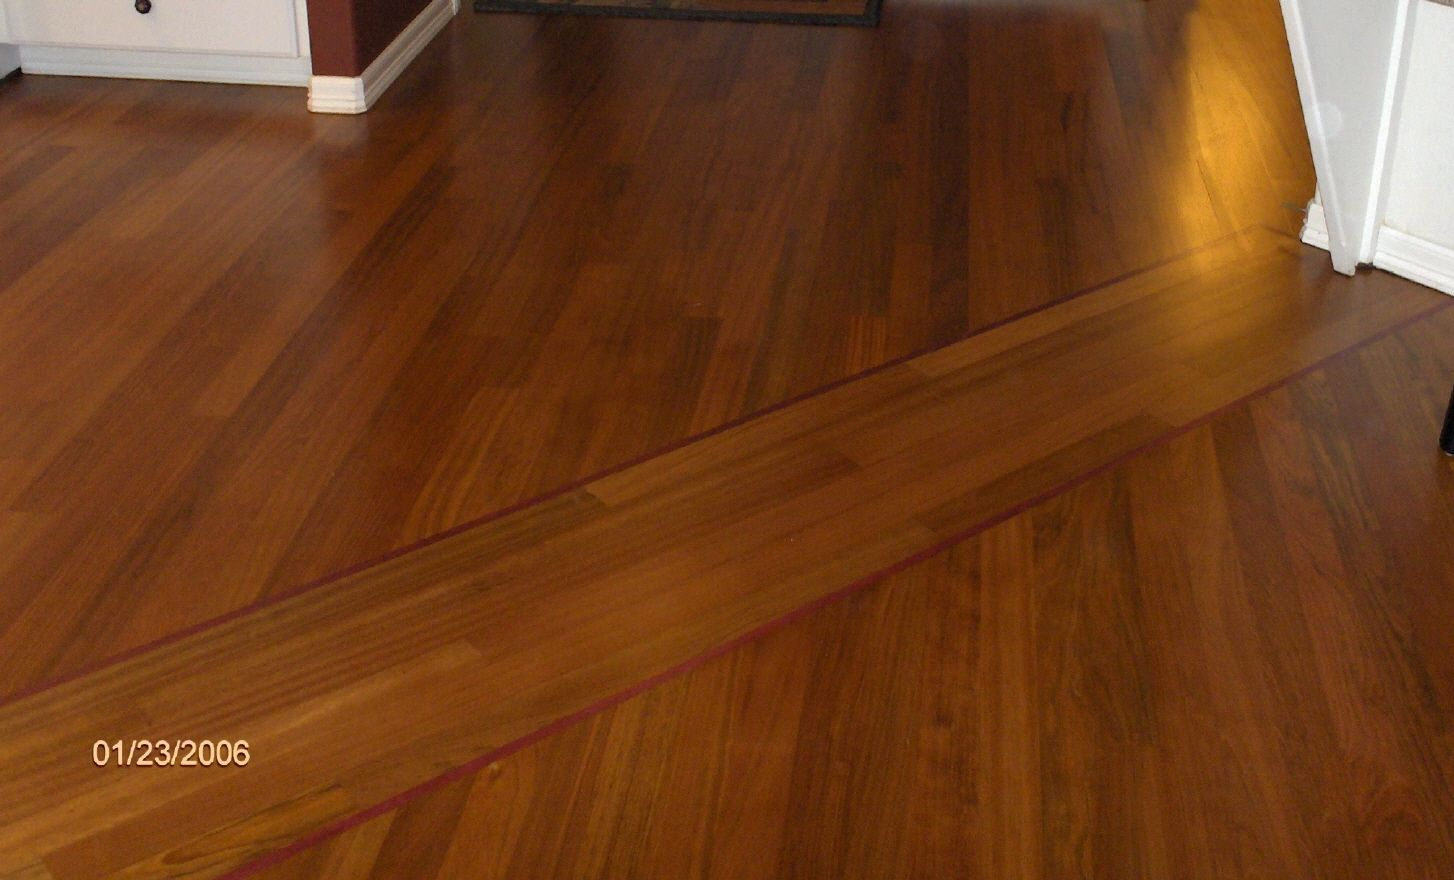 Transition Between Old And New Hardwood Floors Google Search - Hardwood floor transition